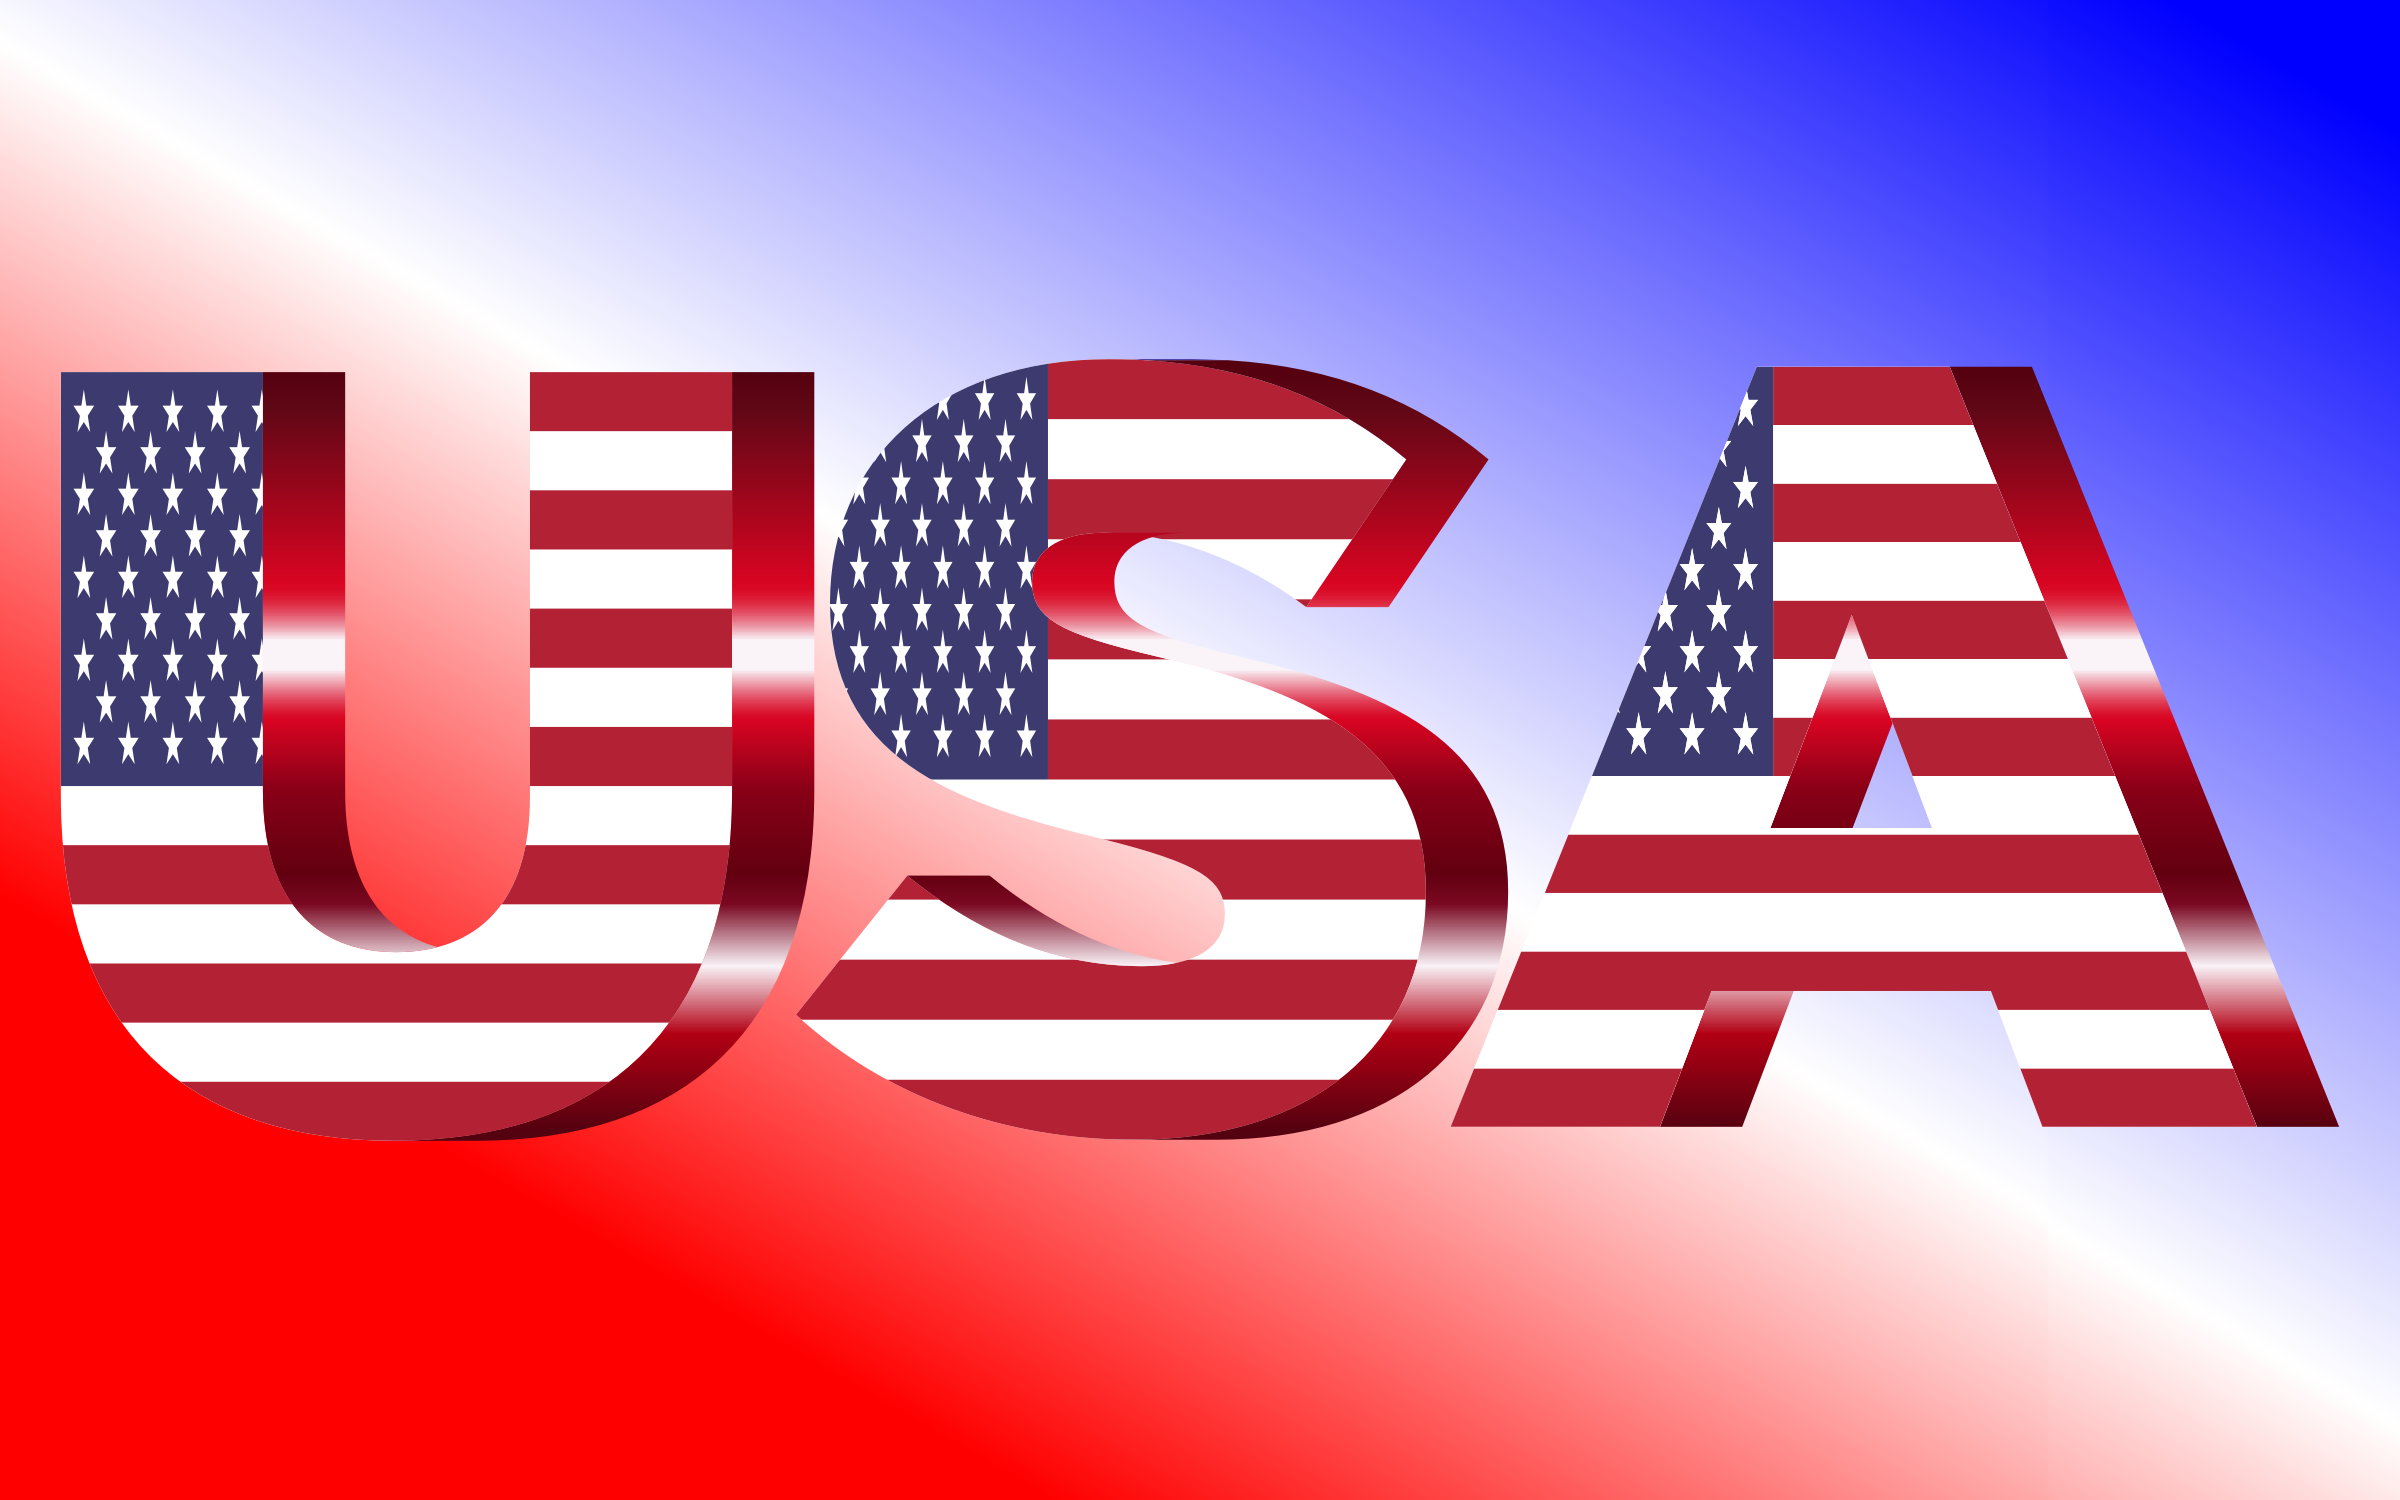 USA Flag Typography Crimson by GDJ